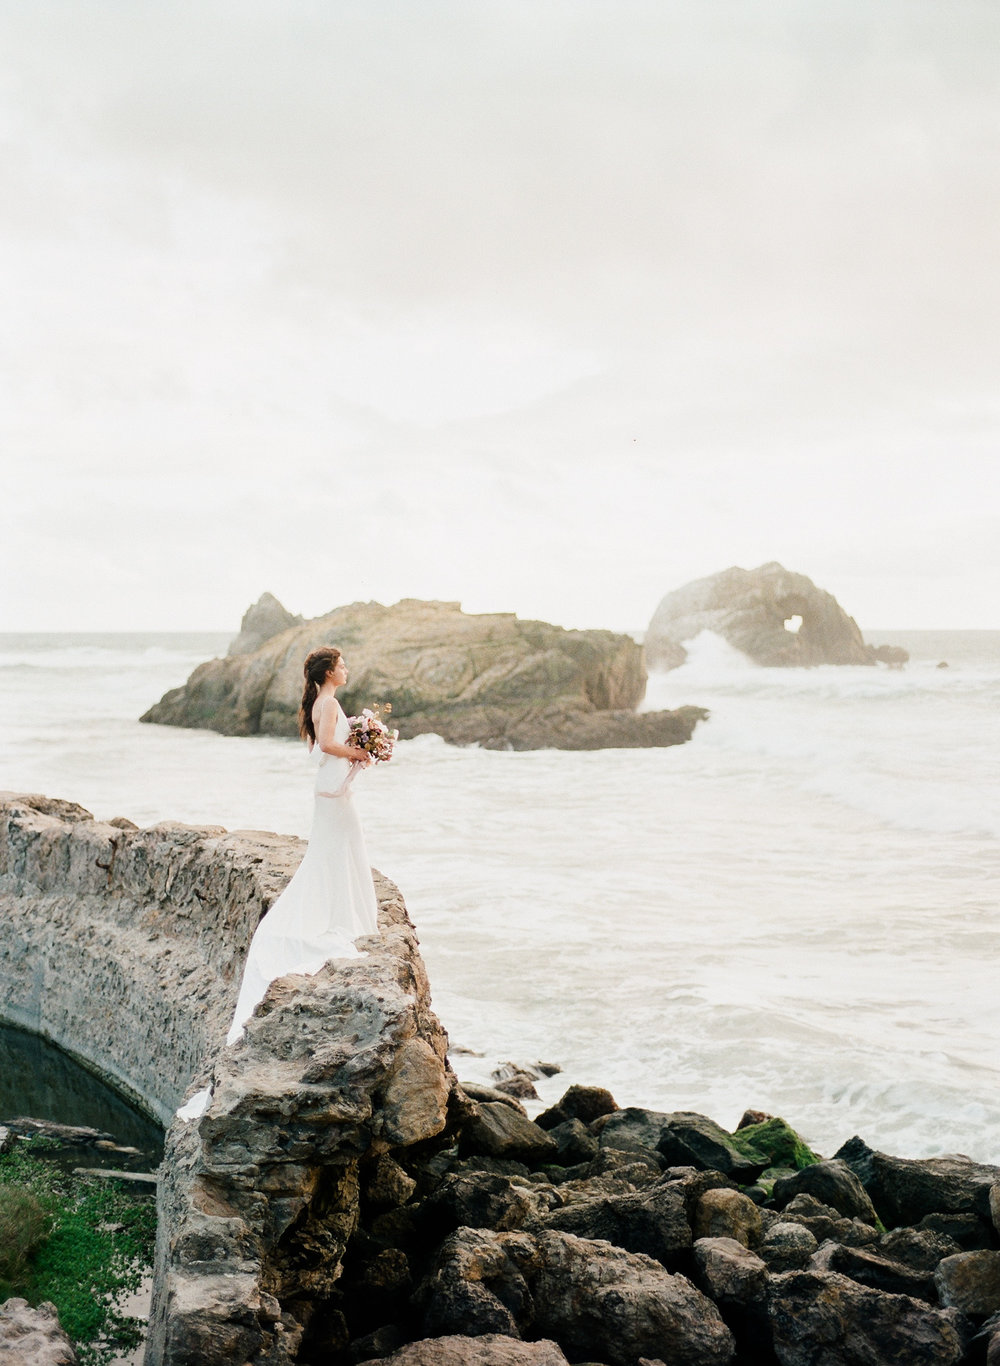 San-Francisco-Wedding-Film-Photography-31.jpg